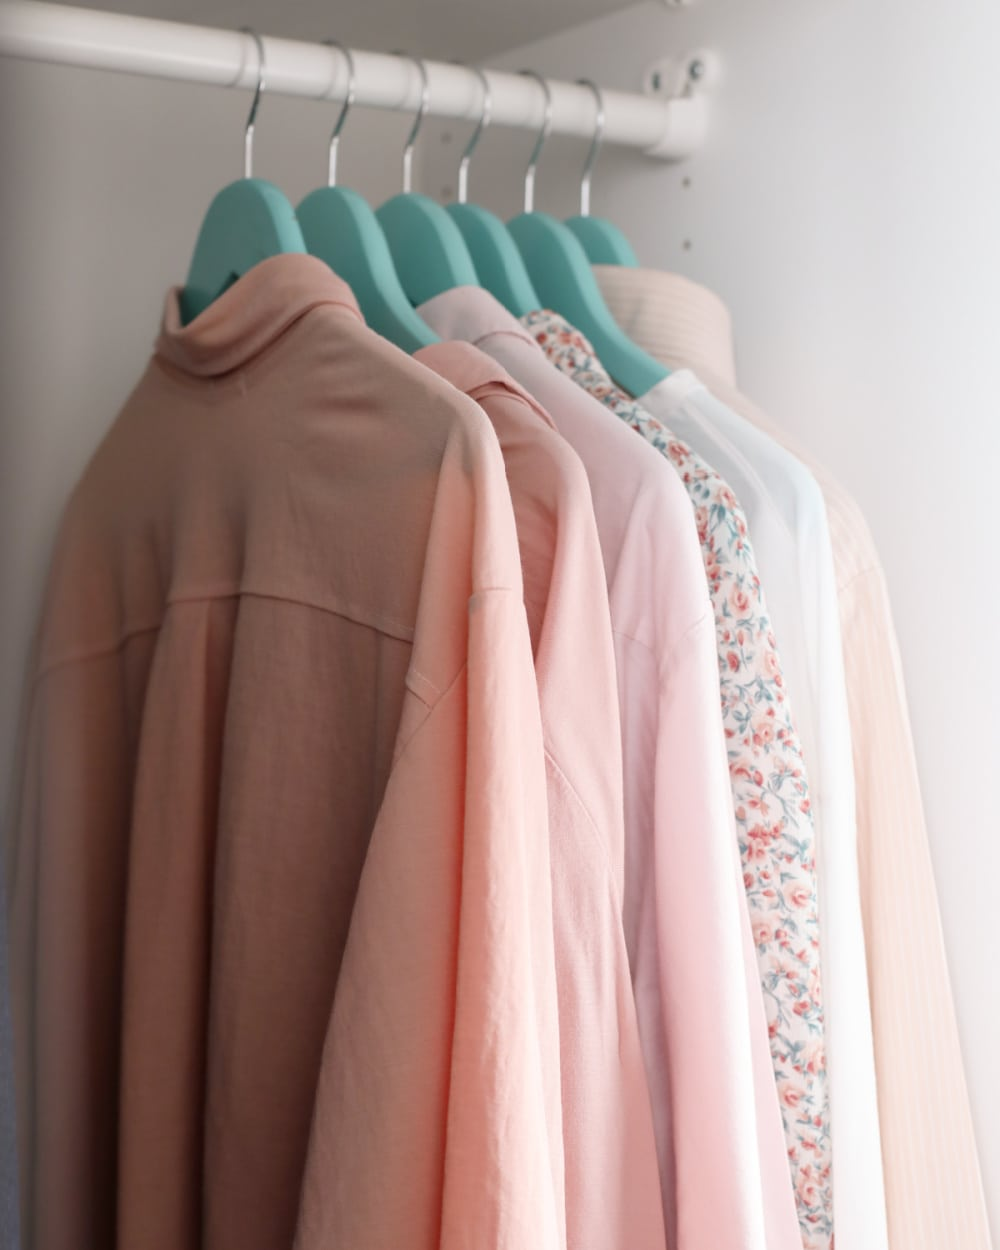 row of pink blouses on closet rod